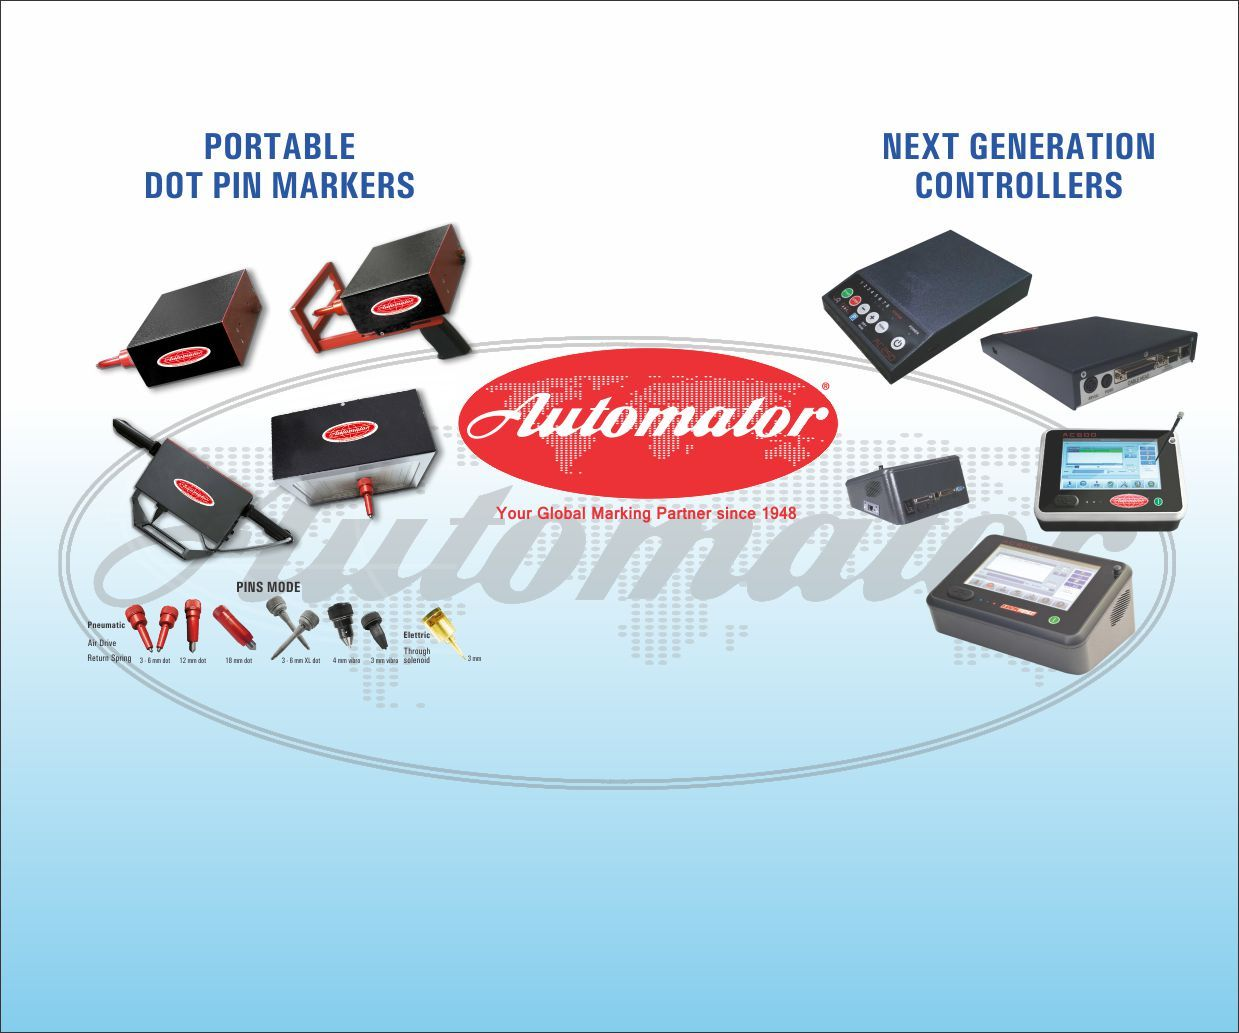 Reliable Dot Pin Marking Machine In India At An Affordable Price By